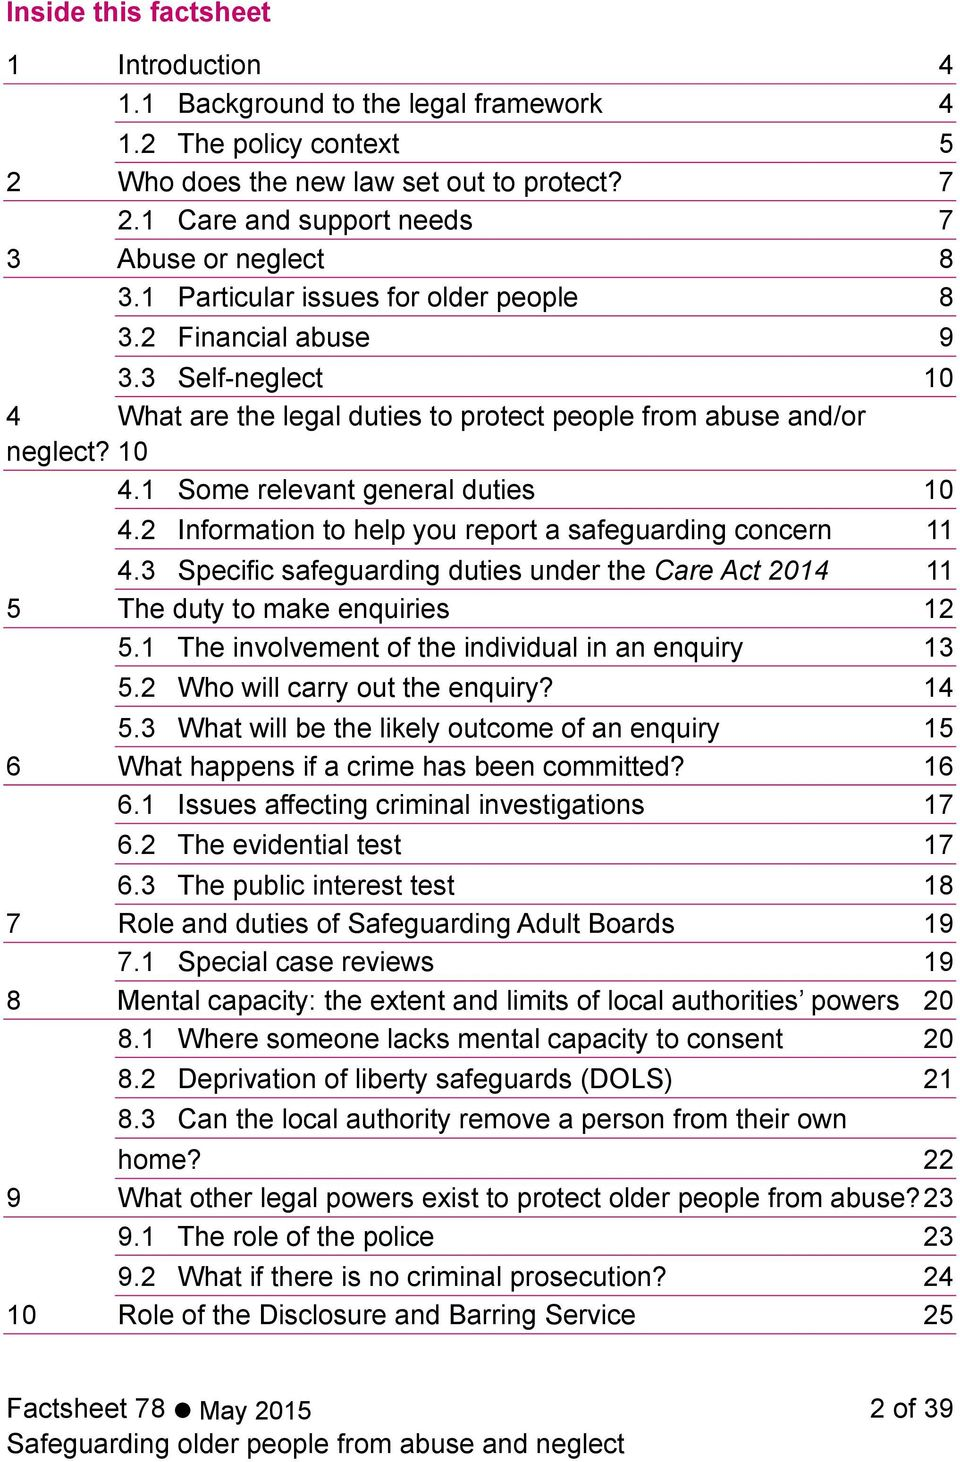 3 Self-neglect 10 4 What are the legal duties to protect people from abuse and/or neglect? 10 4.1 Some relevant general duties 10 4.2 Information to help you report a safeguarding concern 11 4.